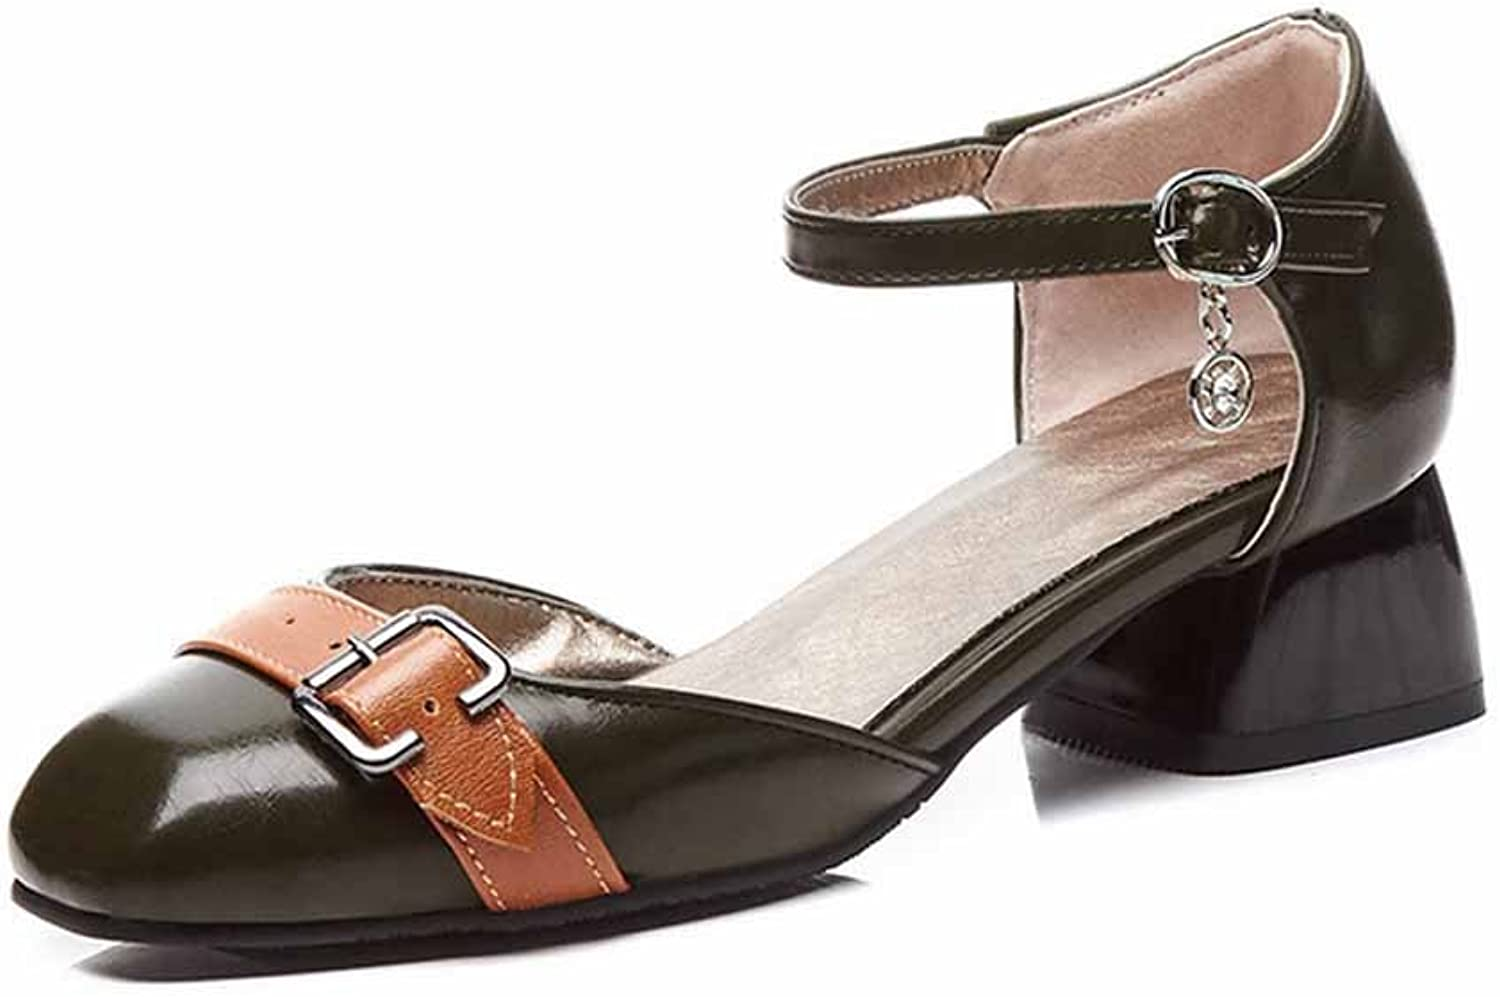 Women Closed Toe Sandals Casual Belt Buckle Ankle Strap Pumps Large Size 40-43